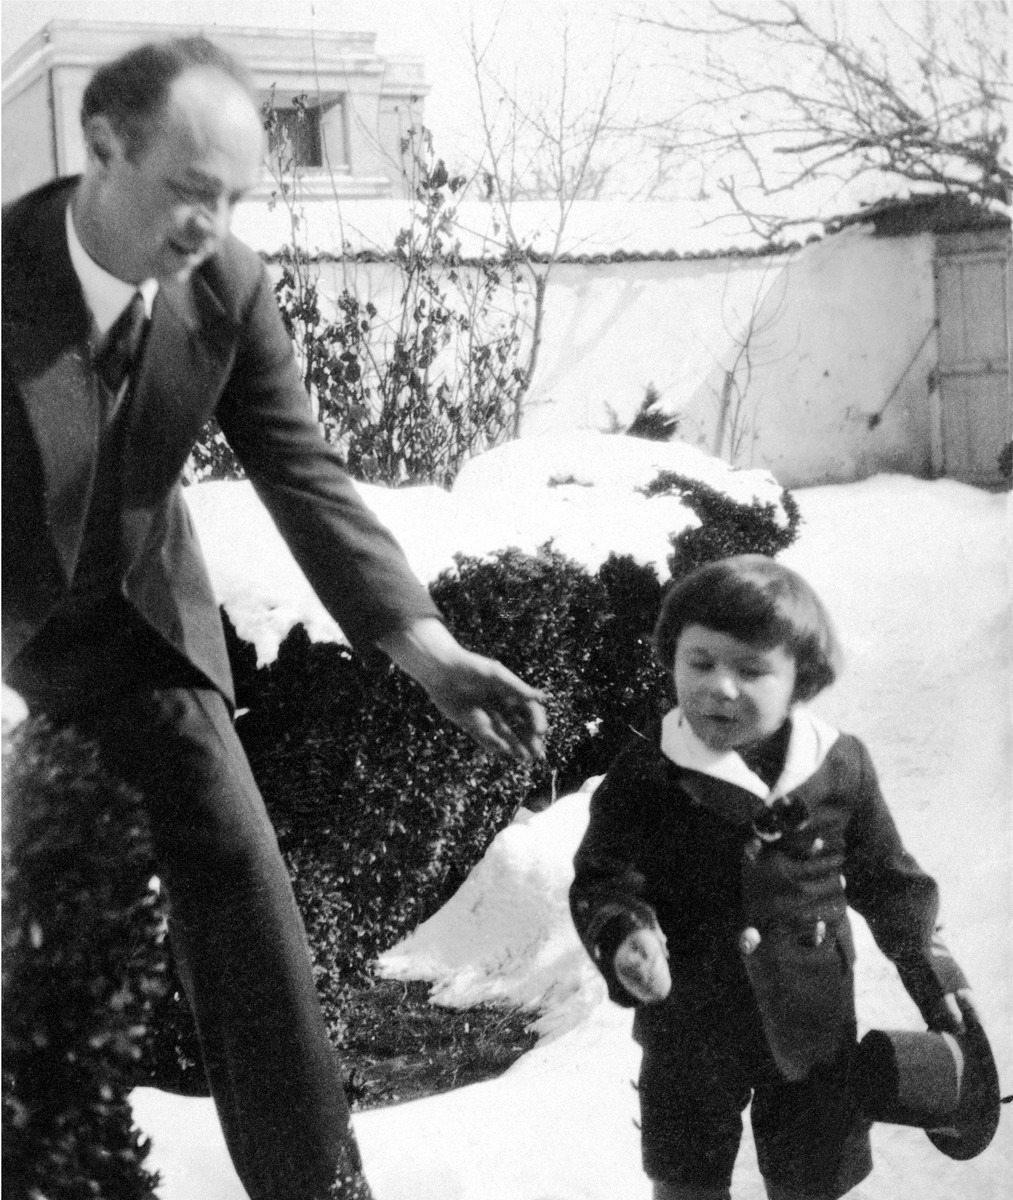 A Jewish child stands outside in the snow in front of his grandparent's house in Kyustendil, Bulgaria.  His uncle reaches out to him.  Pictured are Israel Baruch with his uncle Joseph Baruch.